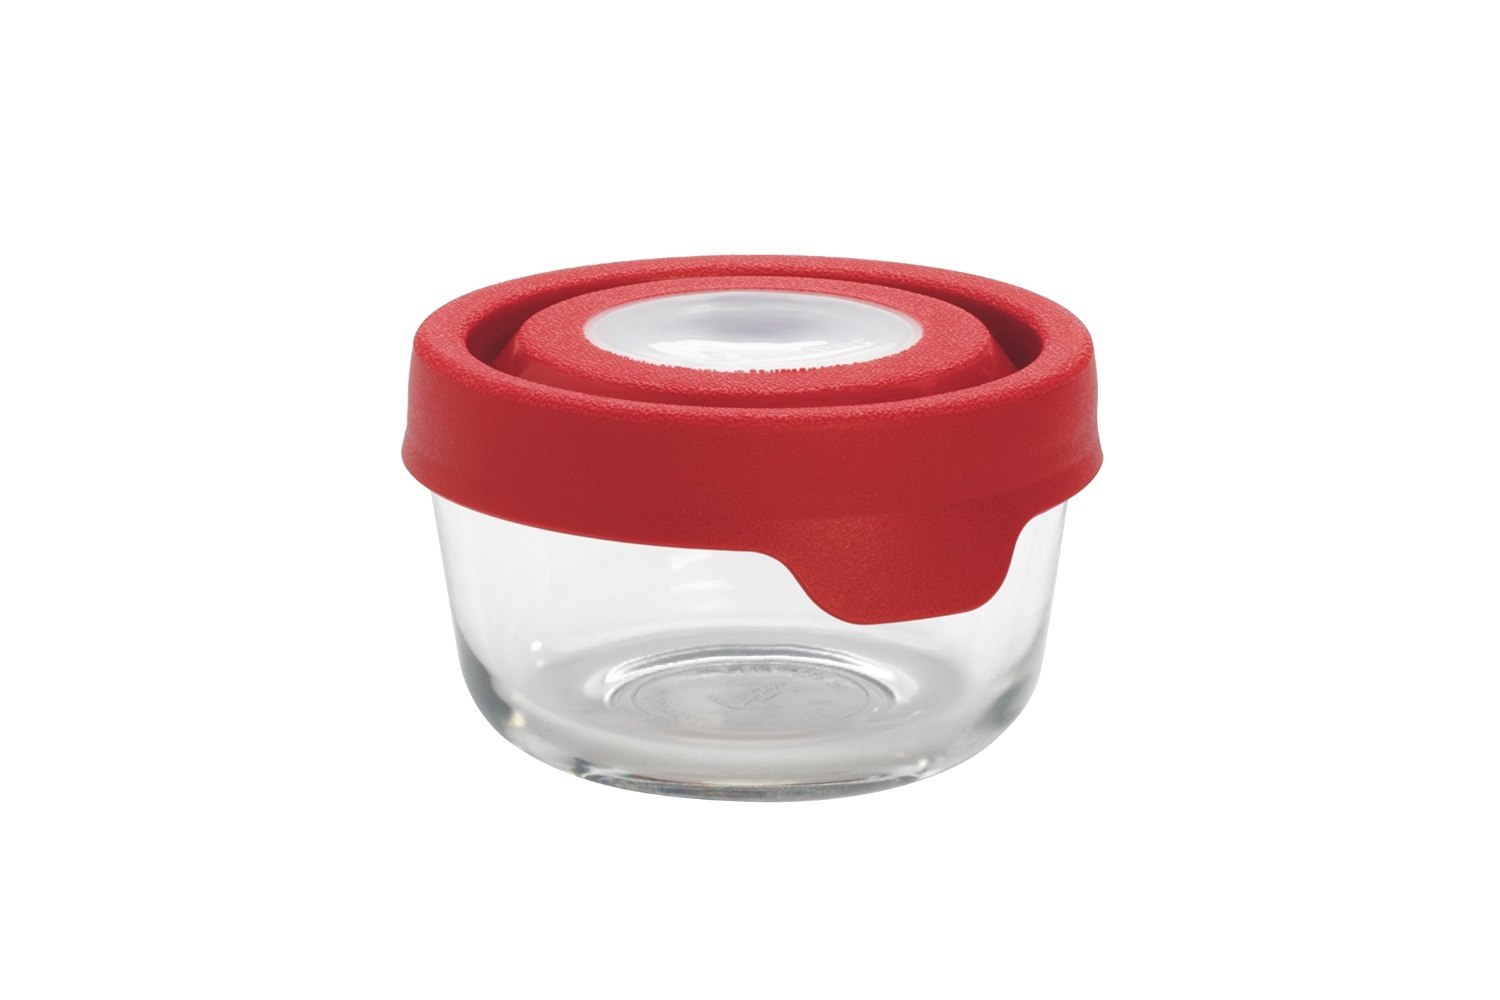 Anchor Hocking TrueSeal Glass Food Storage Container Red 1 Cup